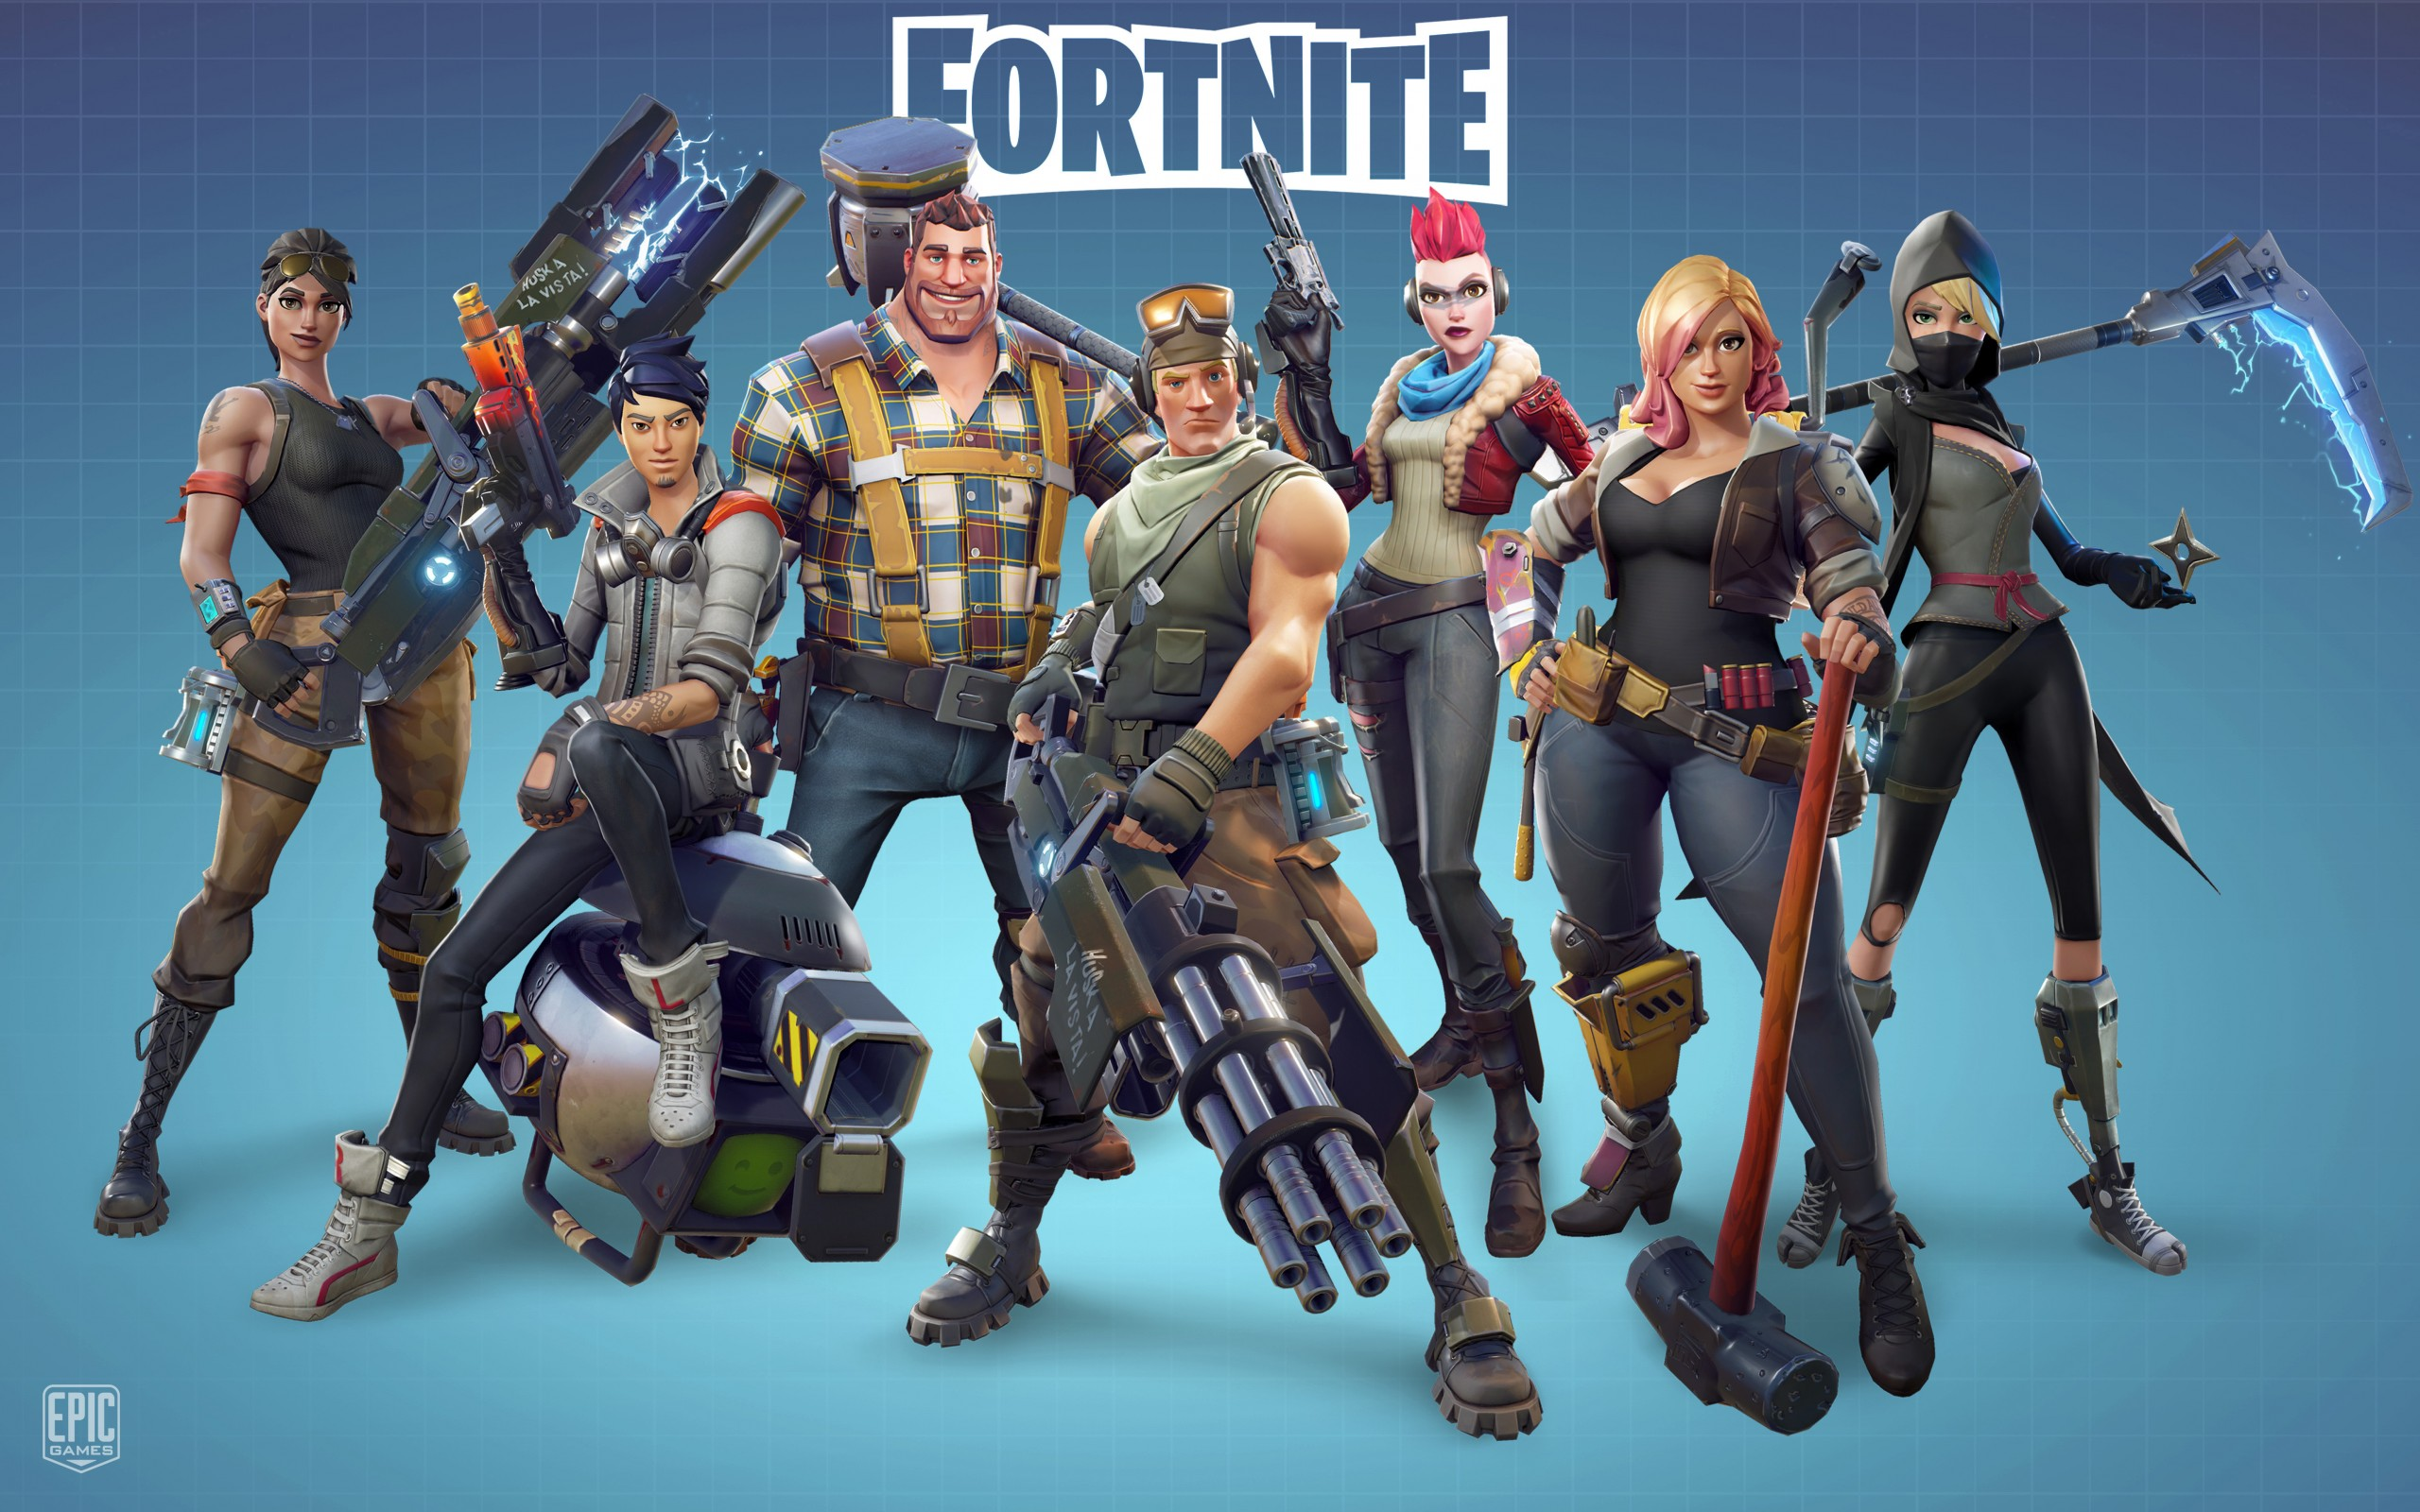 3d Wallpaper Iphone 4 Fortnite Game 2017 5k Wallpapers Hd Wallpapers Id 21004